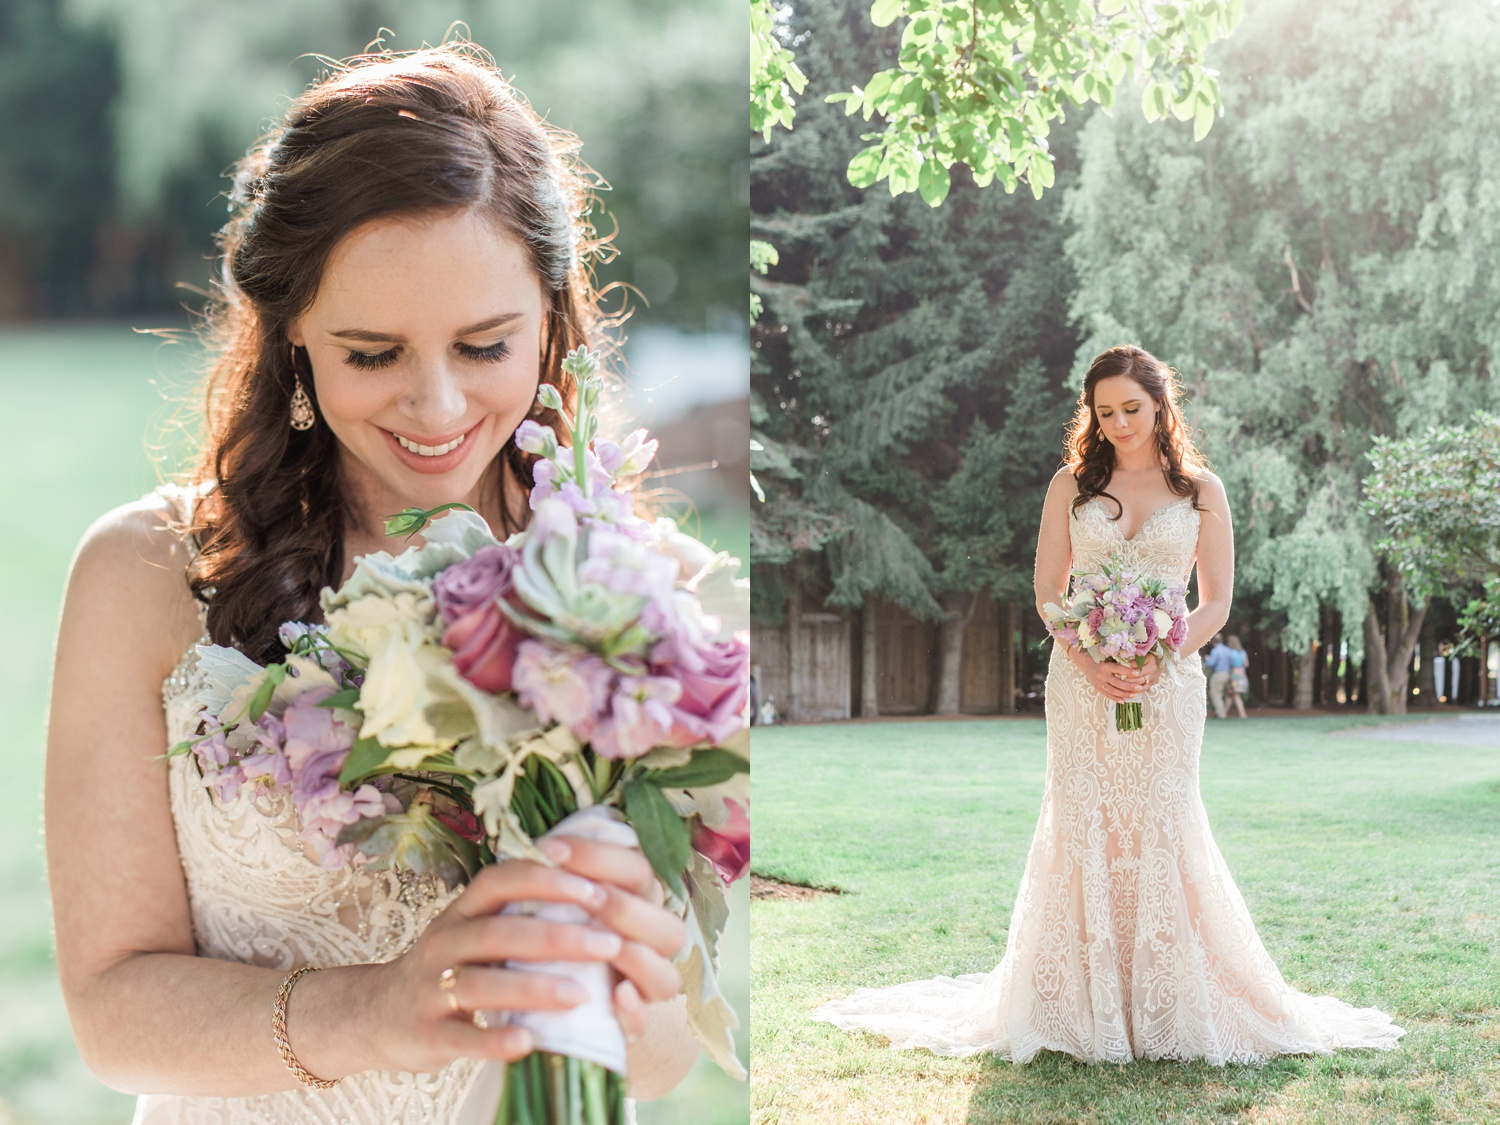 A bride hold her bouquet and smiles before her wedding at Woodland Meadow Farms in Snohomish, a wedding venue near Seattle, WA. | Joanna Monger Photography | Seattle & Snohomish Photographer